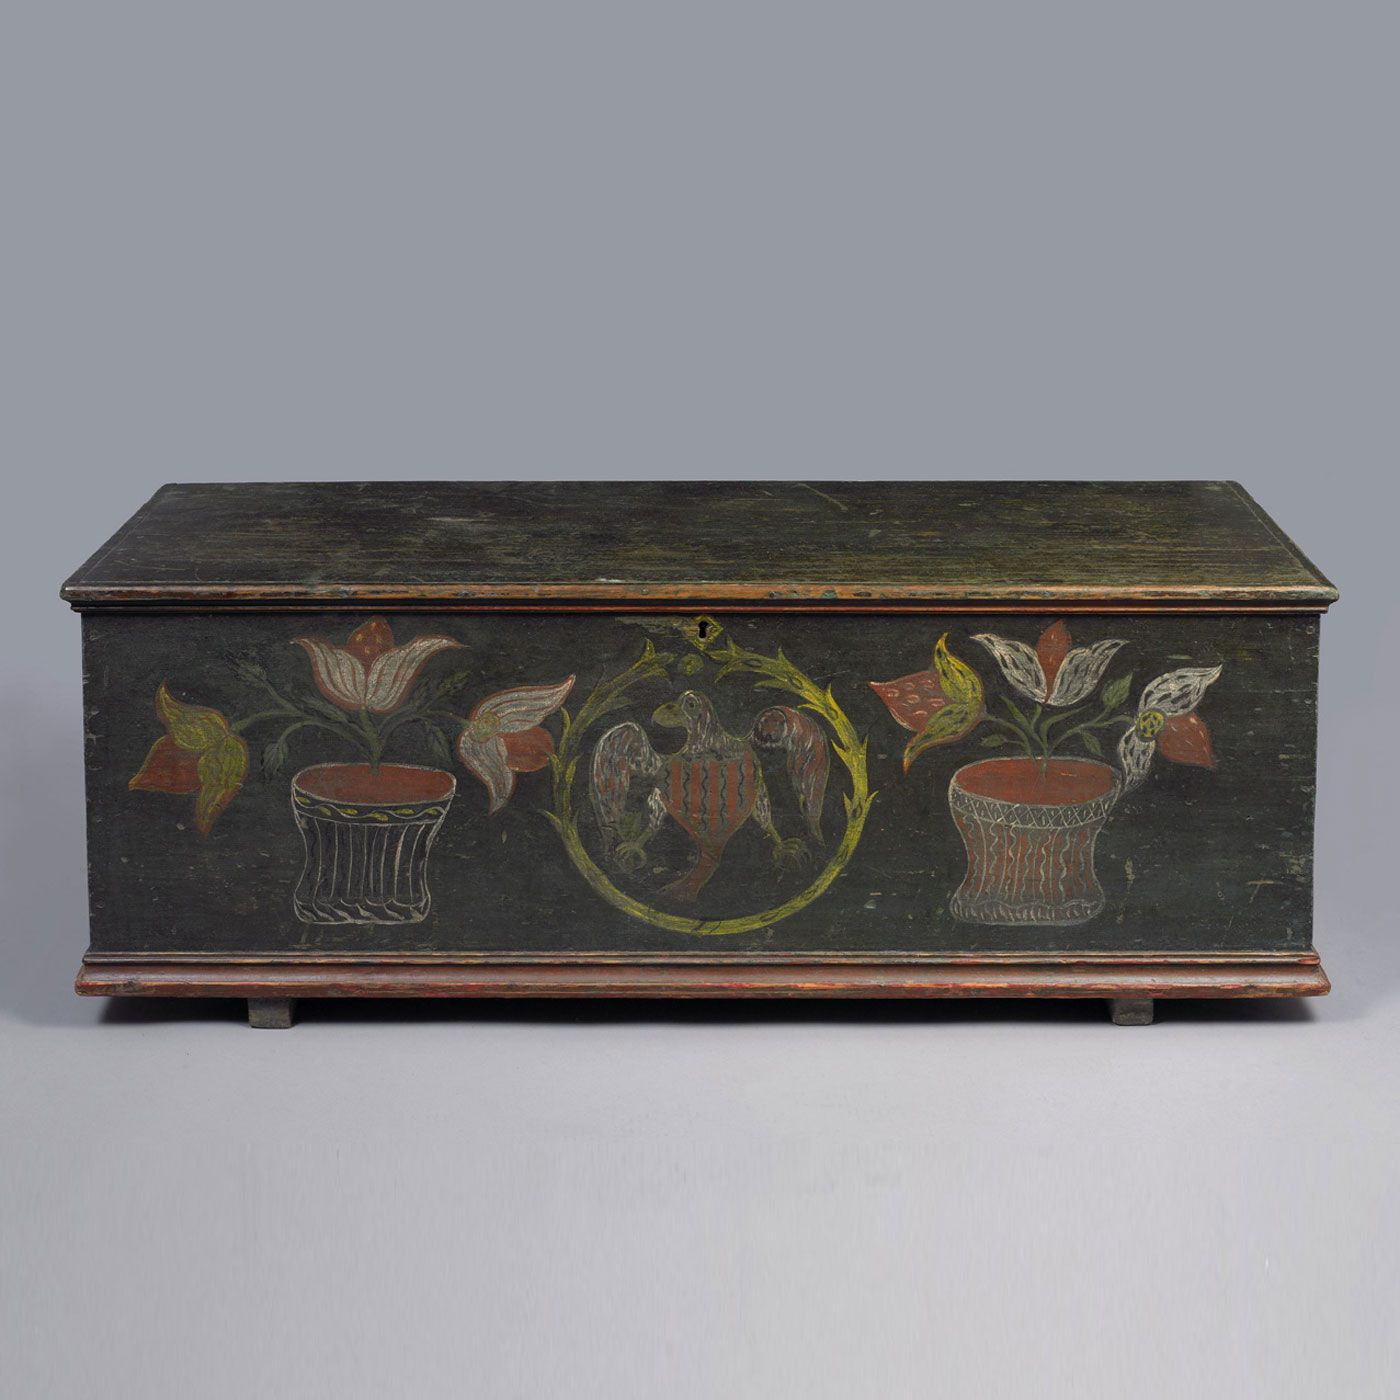 Rare Painted Blanket Chest, NY C. 1790 - 1810 - Rare Painted Blanket Chest, NY C. 1790 - 1810 Blanket Chest